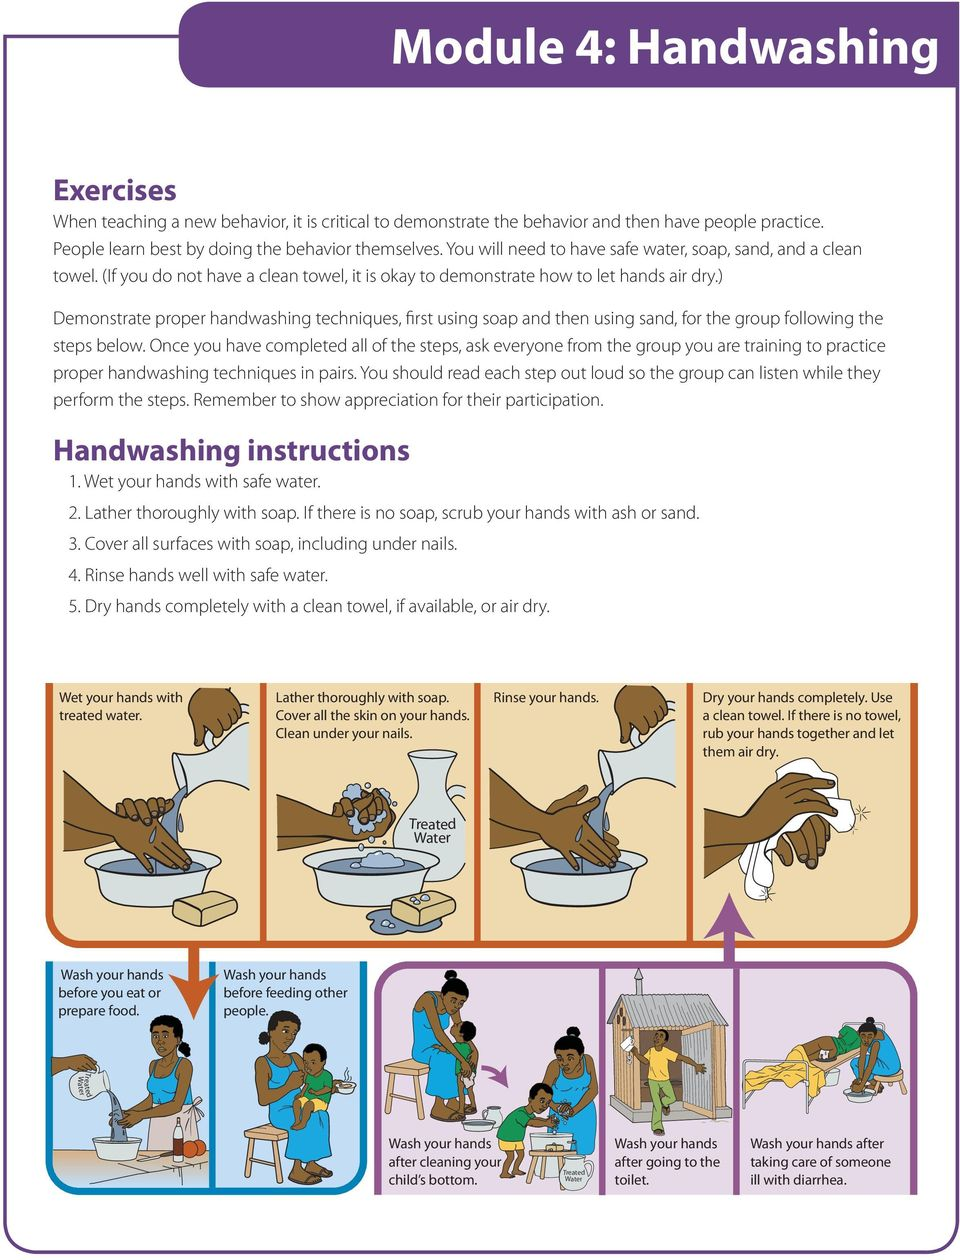 ) Demonstrate proper handwashing techniques, first using soap and then using sand, for the group following the steps below.